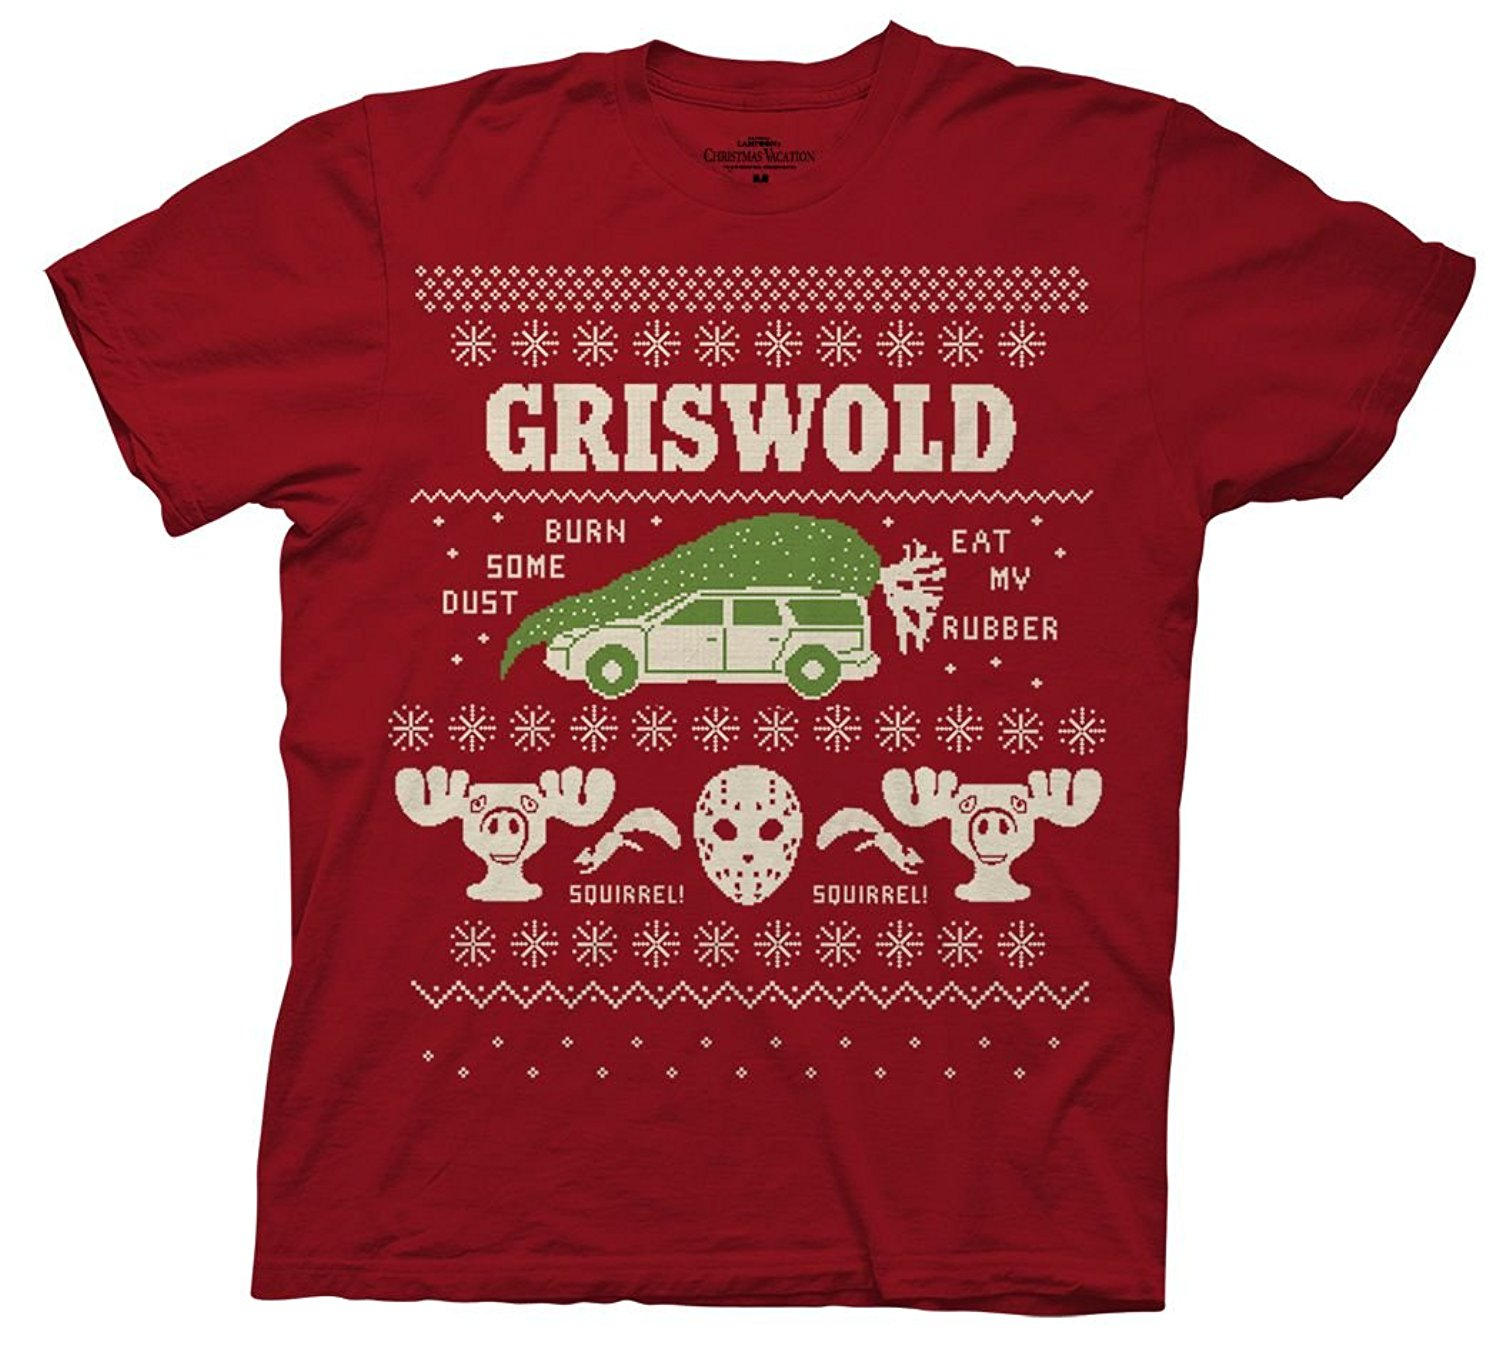 Ripple Junction National Lampoons Christmas Vacation Griswold Burn Dust Adult T-shirt